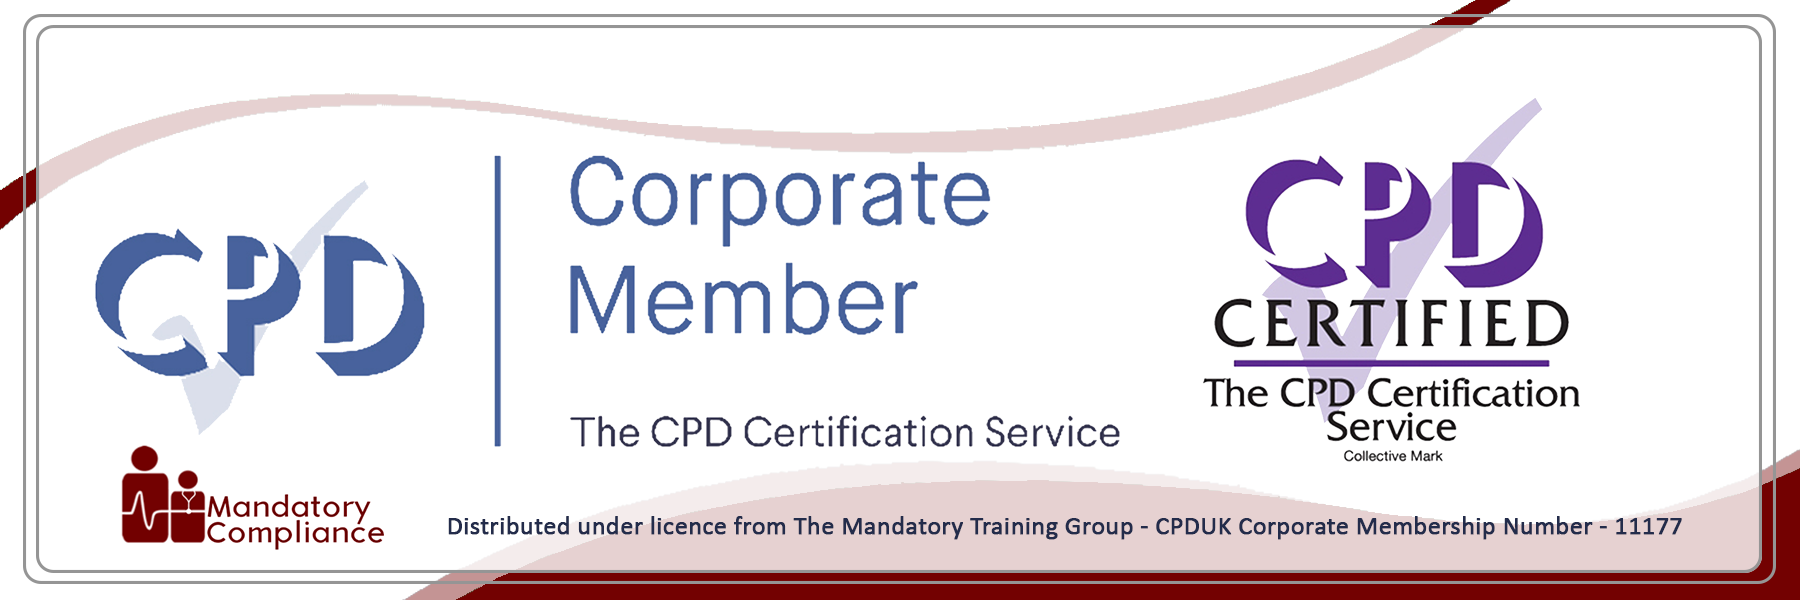 Developing a Business Plan - Enhanced Dental CPD Course - E-Learning Courses - Mandatory Compliance UK-